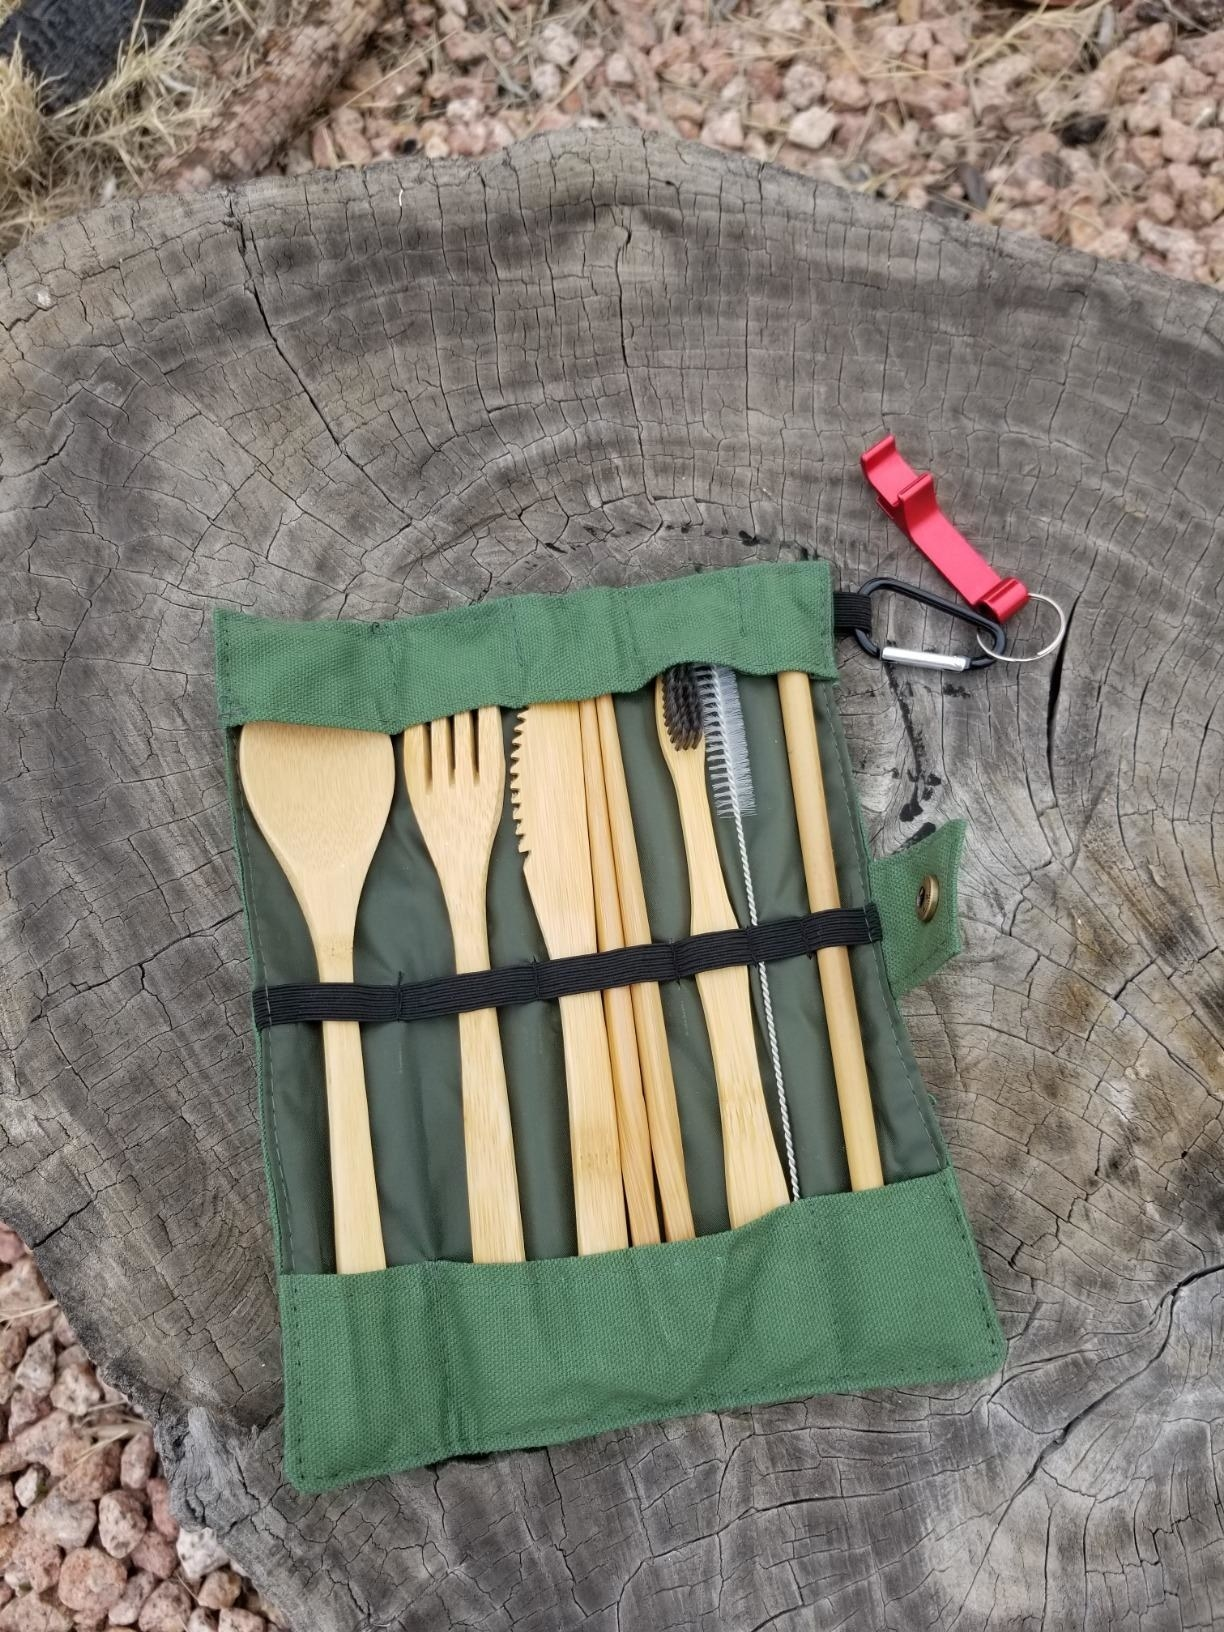 the bamboo cutlery set in a green case on a tree stump